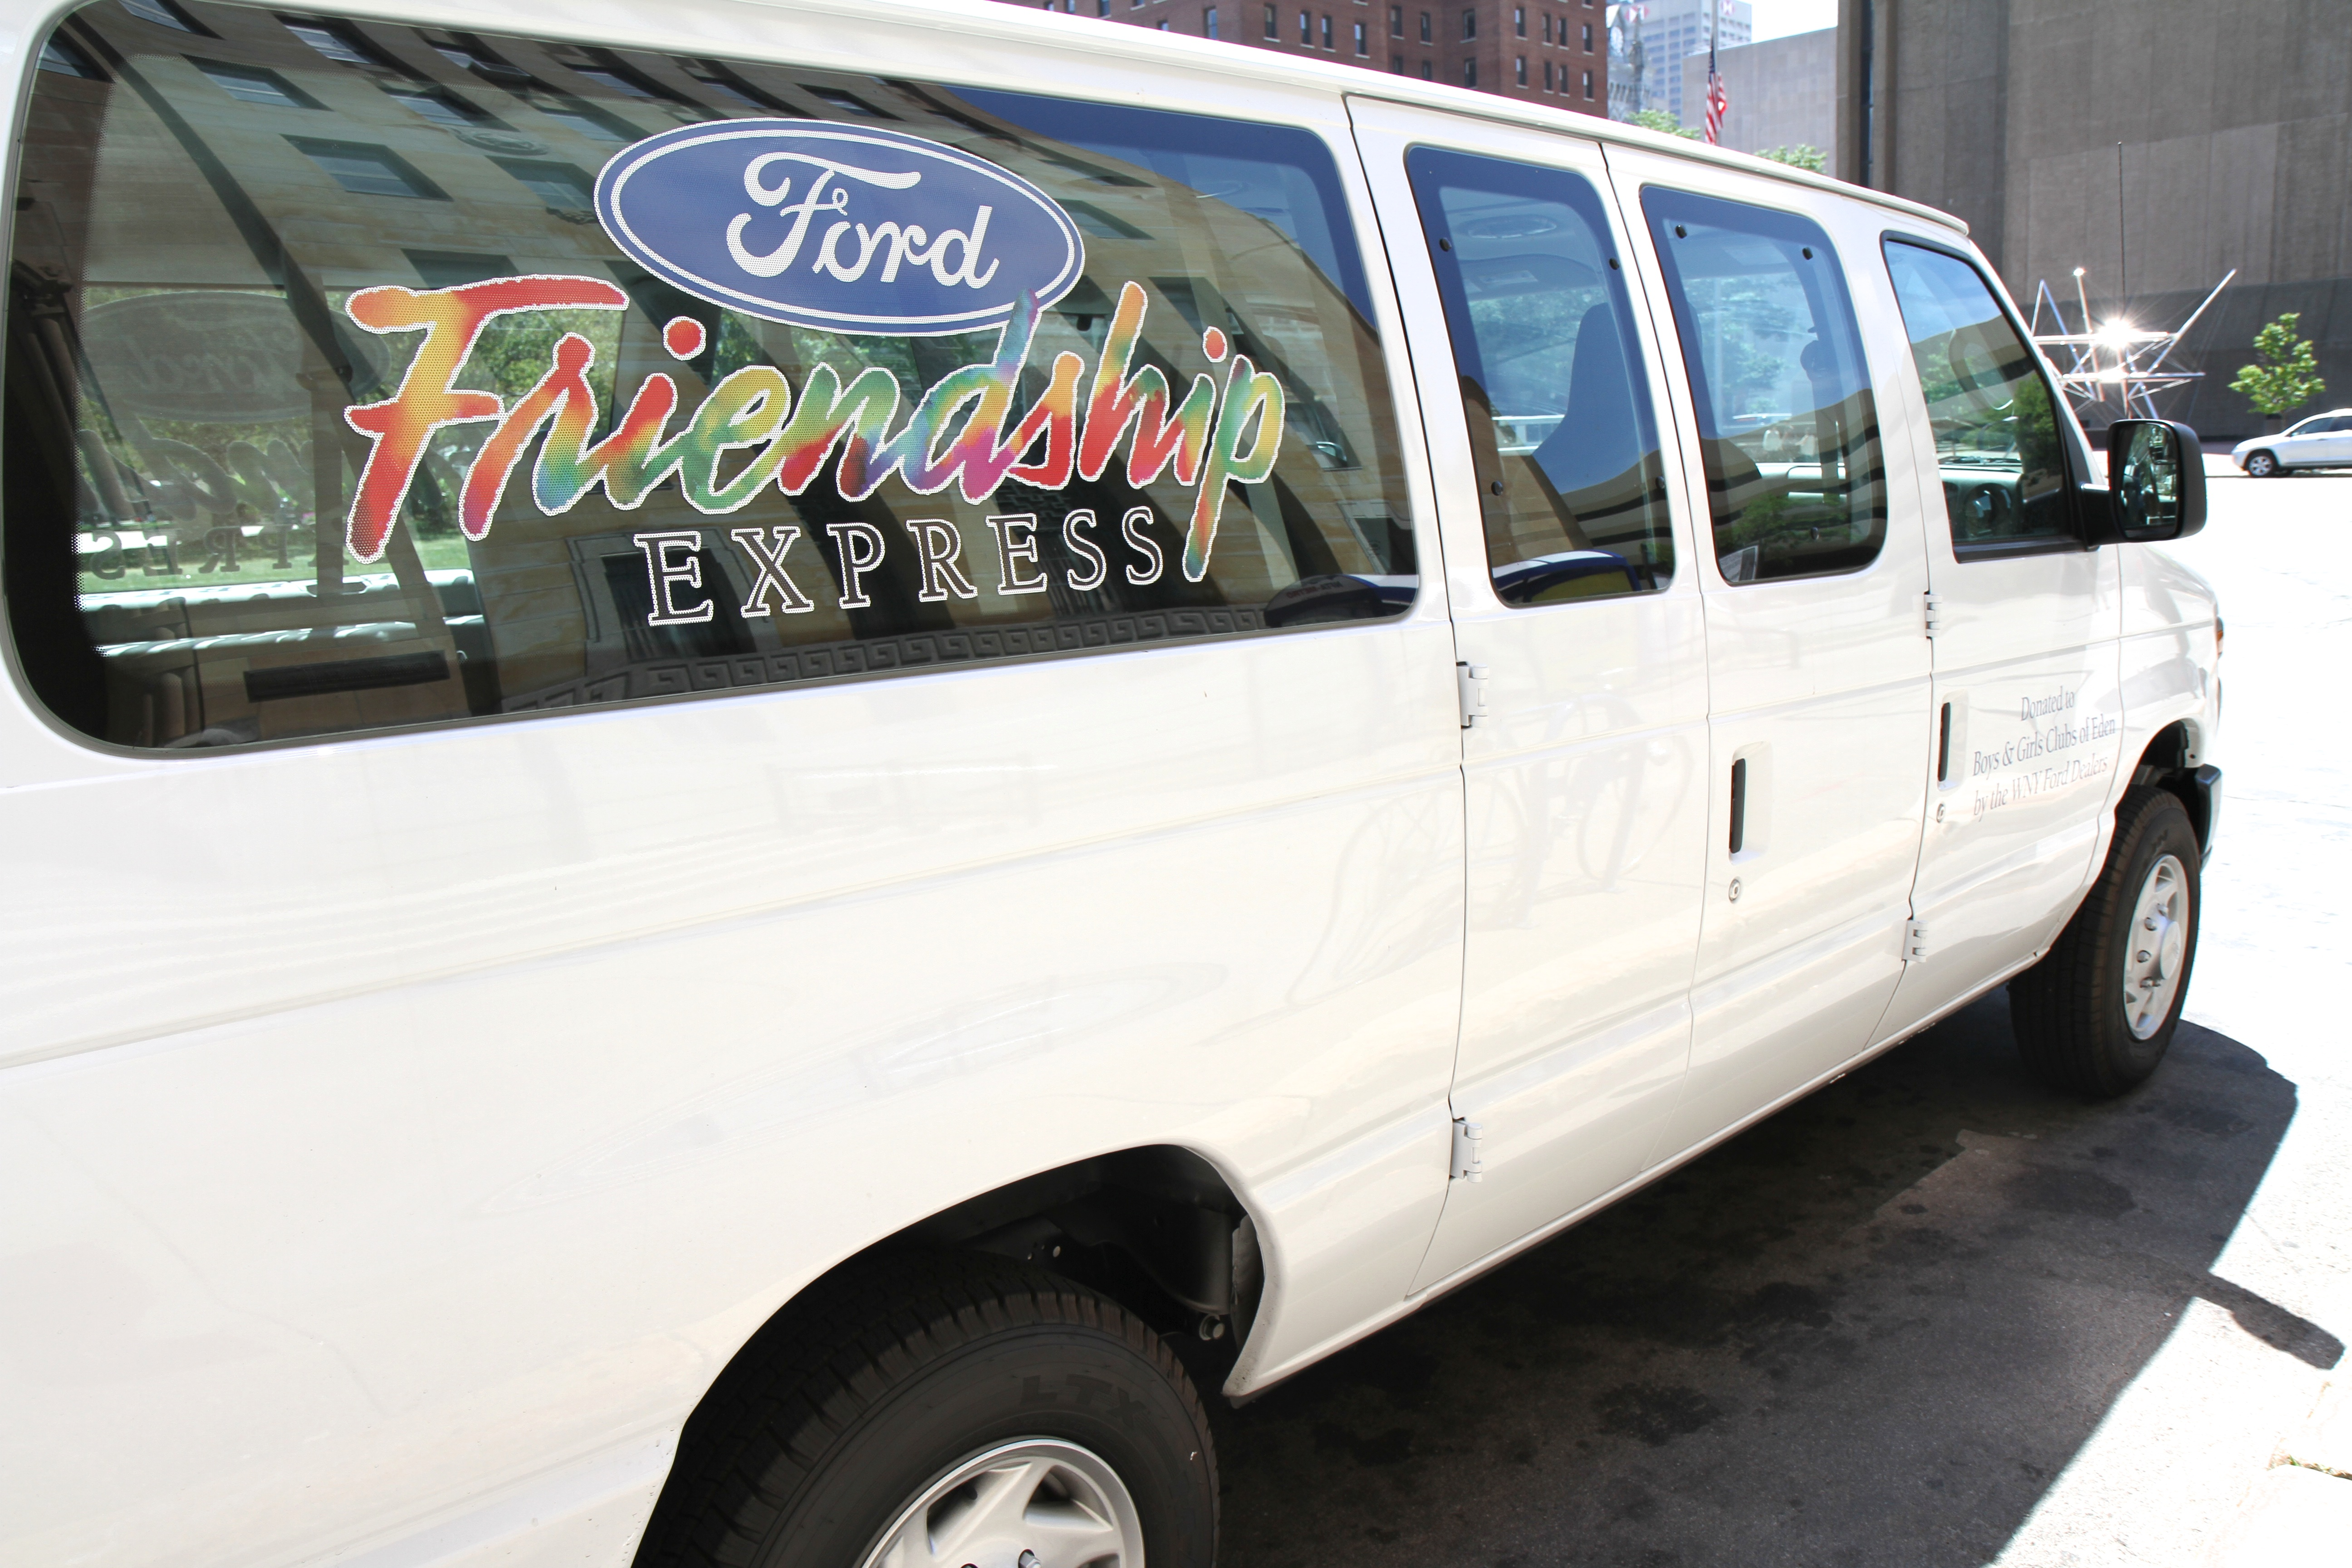 Now in its 17th year, the Ford Friendship Express program has awarded 65 vans valued at more than $1.2 million to WNY nonprofits.